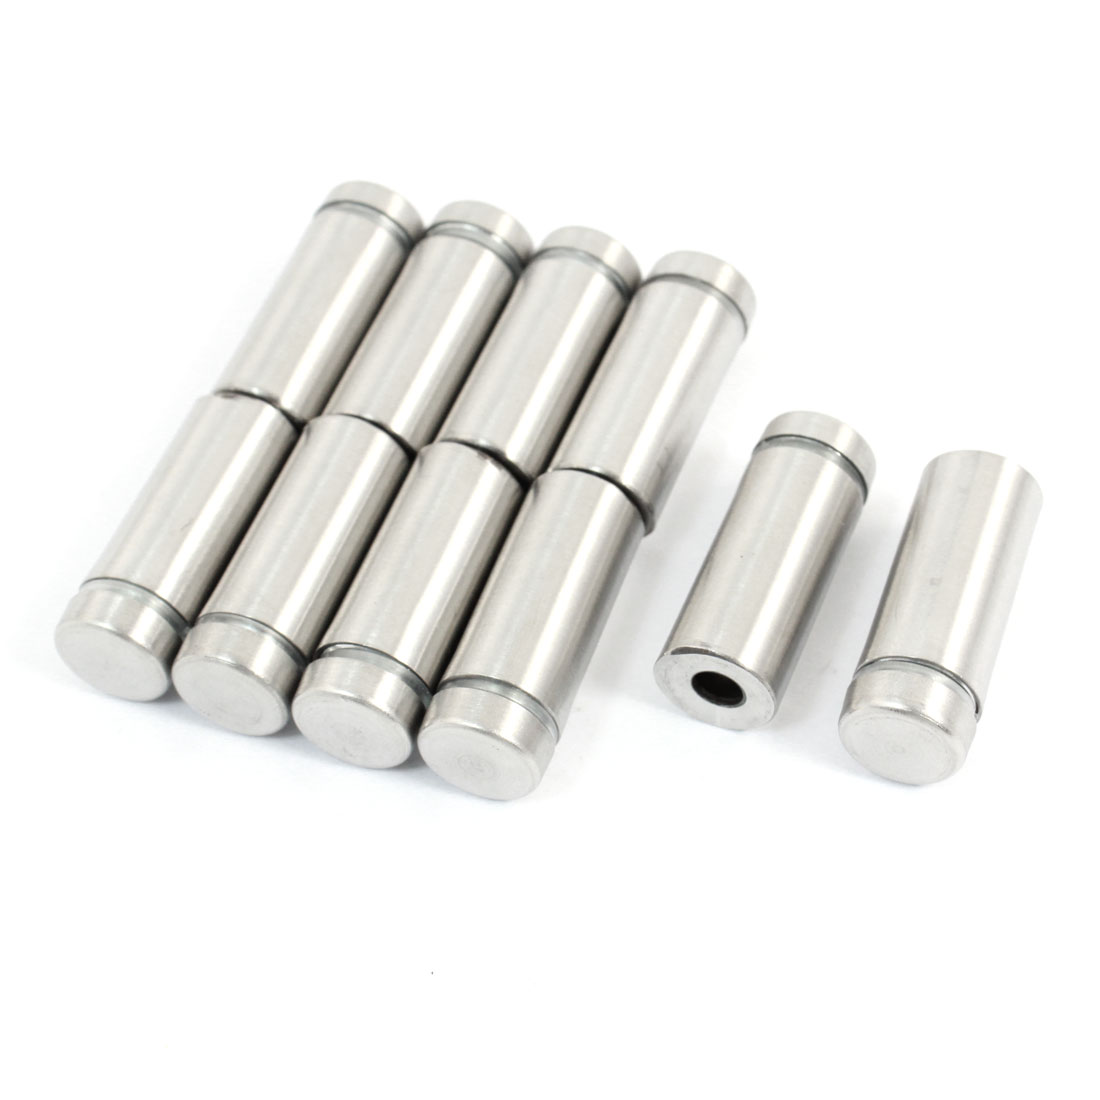 10 Pcs 12mm x 30mm Stainless Steel Glass Standoff Hardware